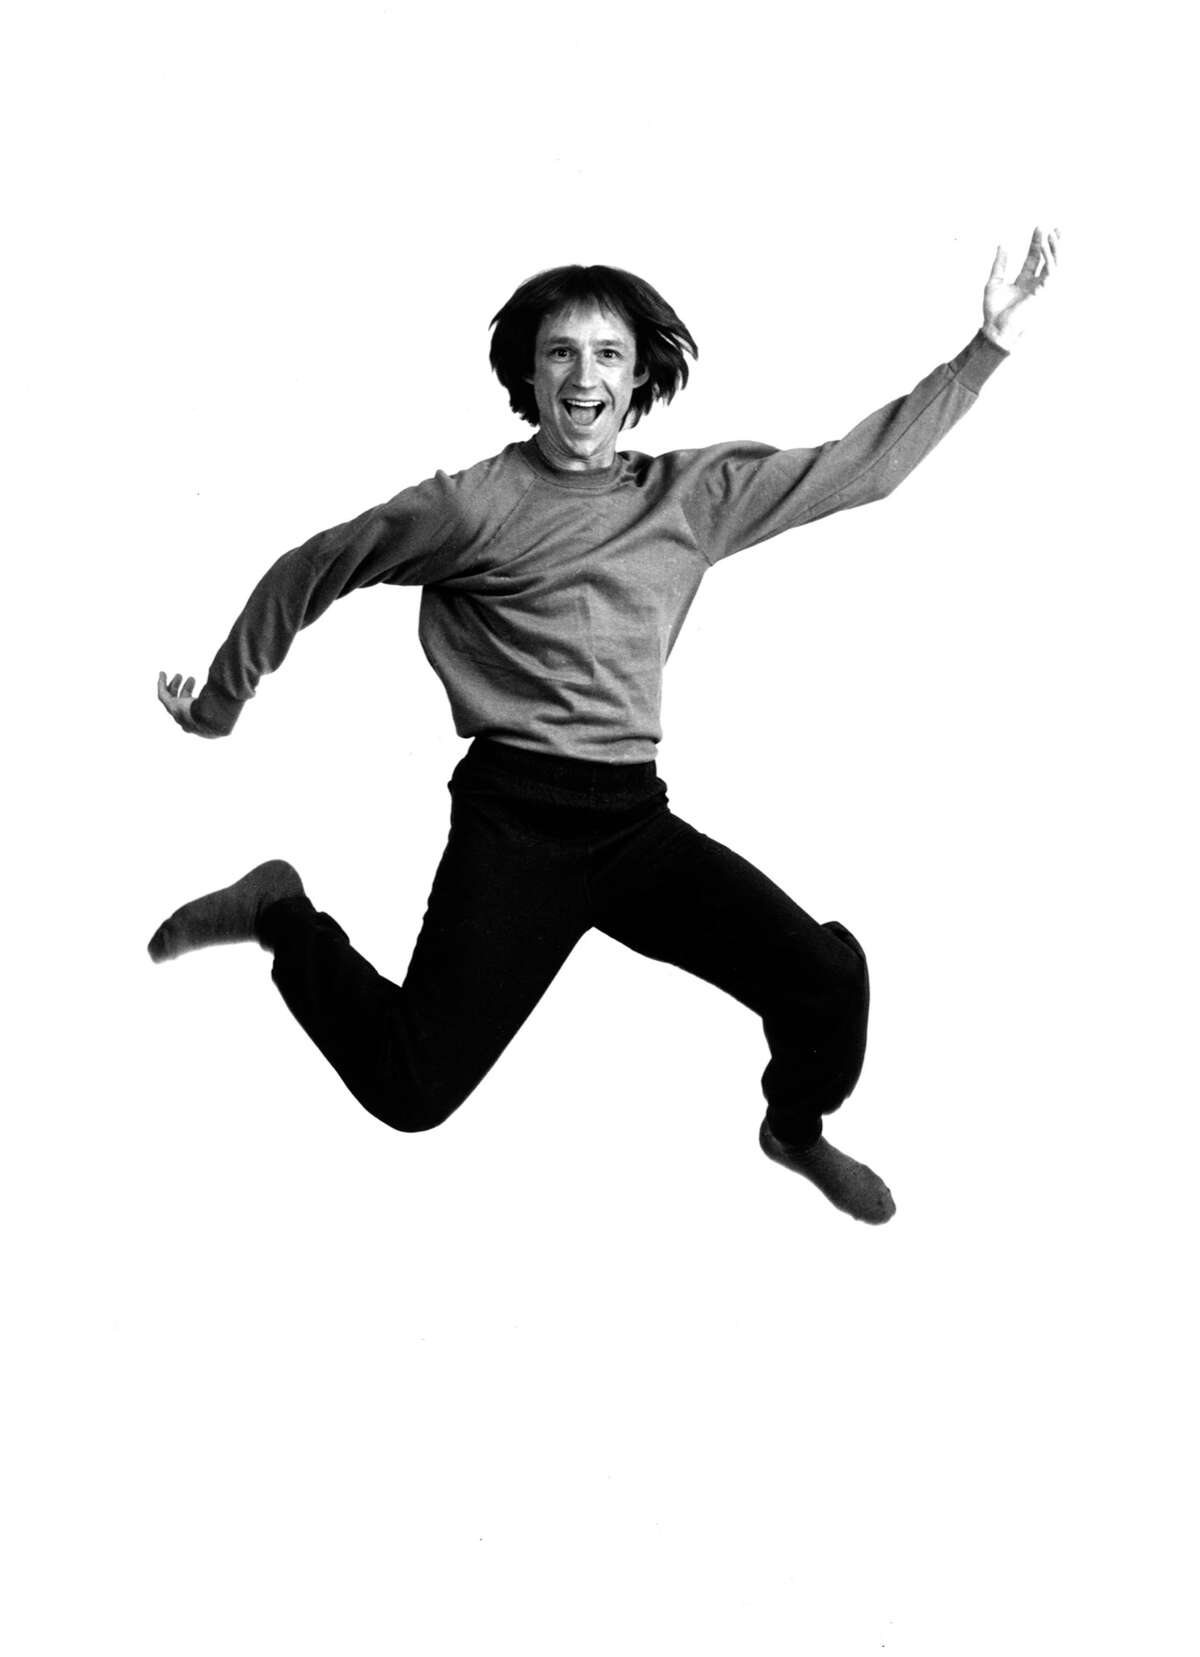 Photo of Peter TORK and MONKEES; Posed studio portrait of Peter Tork, jumping (Photo by Richard E. Aaron/Redferns)